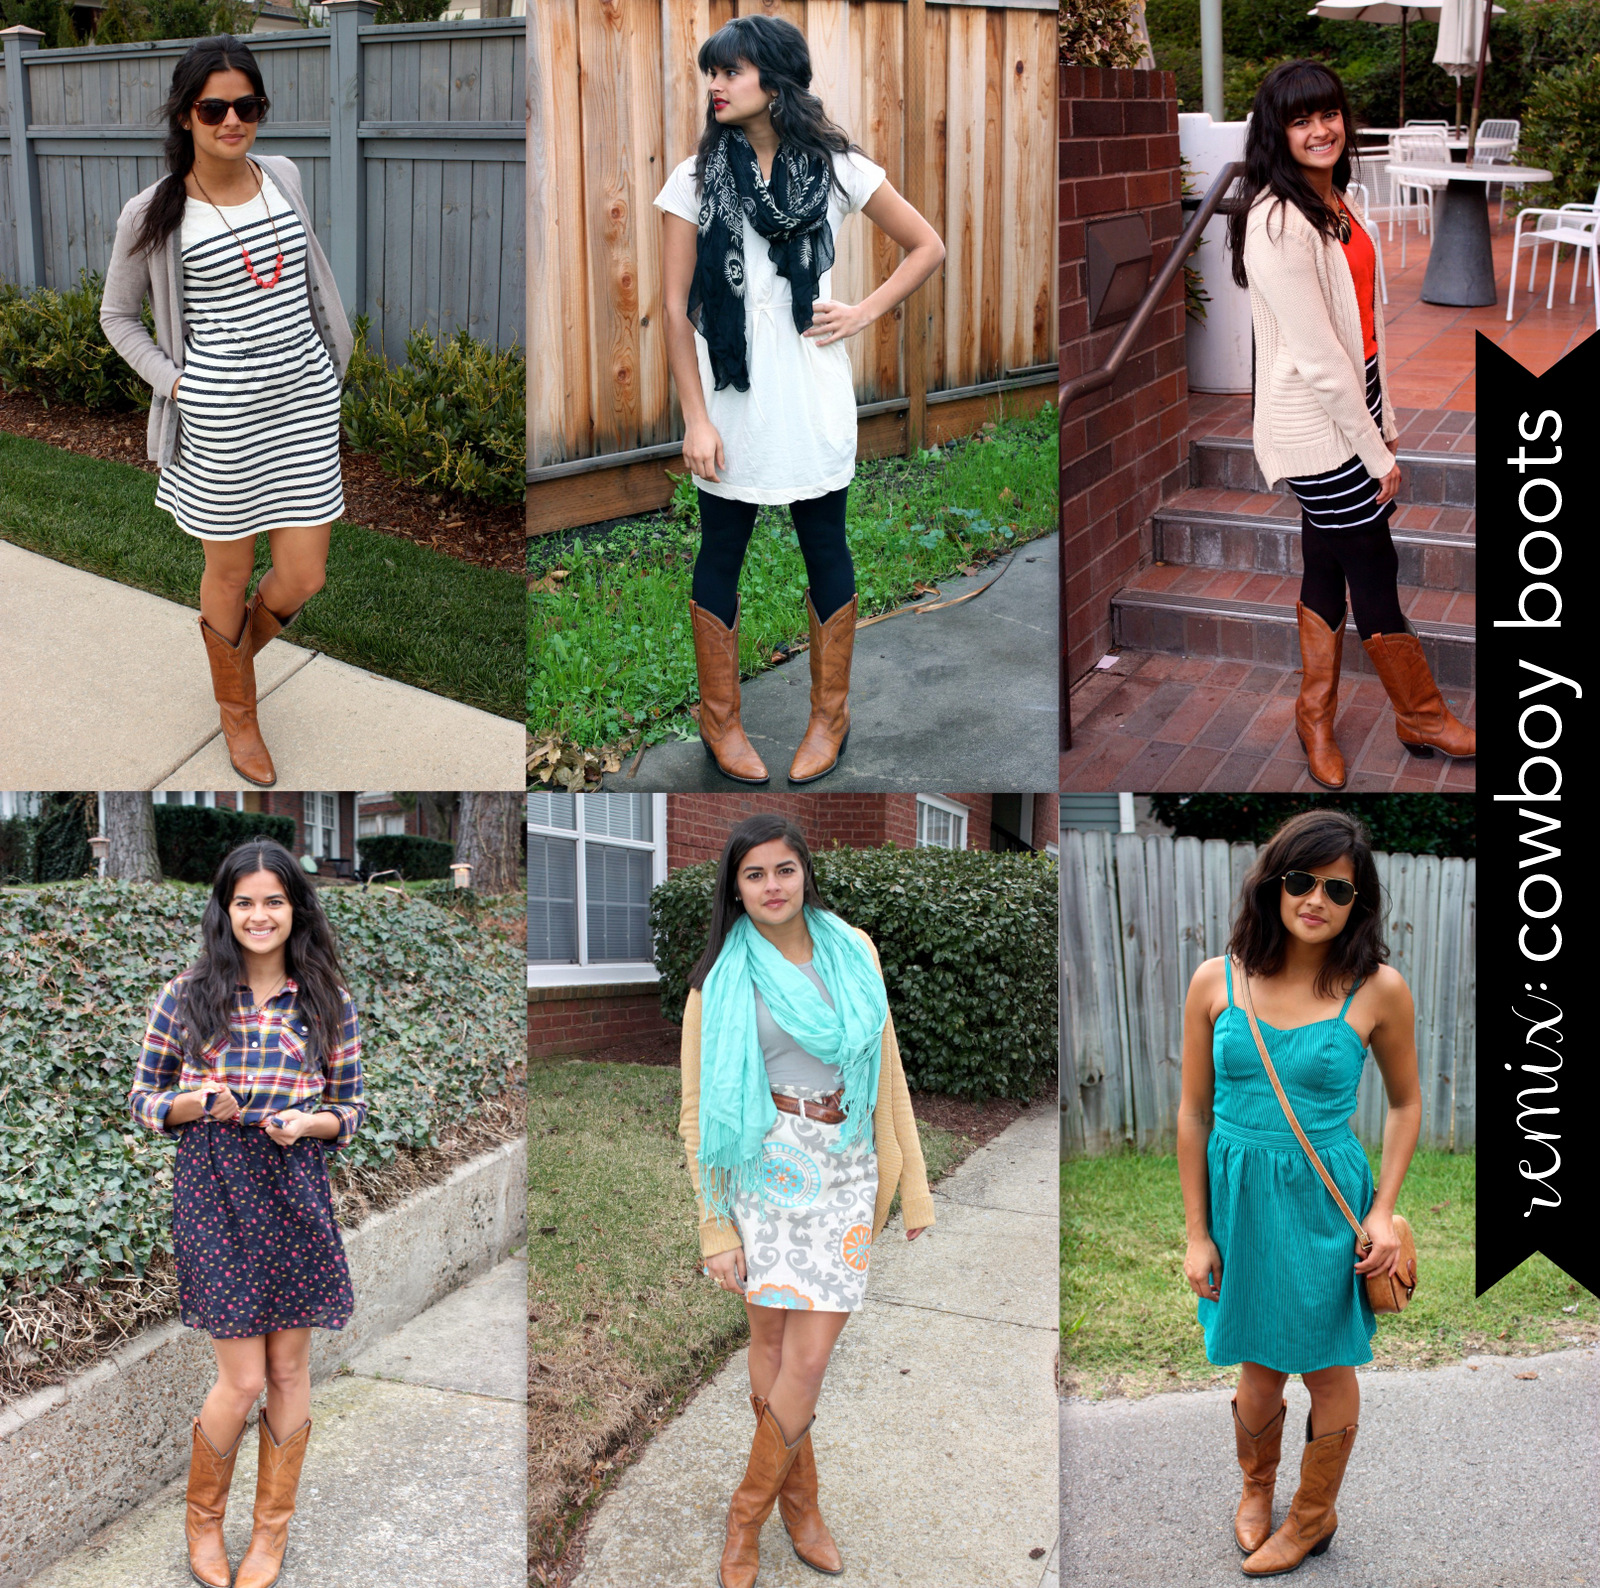 Priya the Blog, Nashville fashion blog, Nashville fashion blogger, cowboy boot remix, how to wear cowboy boots, vintage cowboy boots